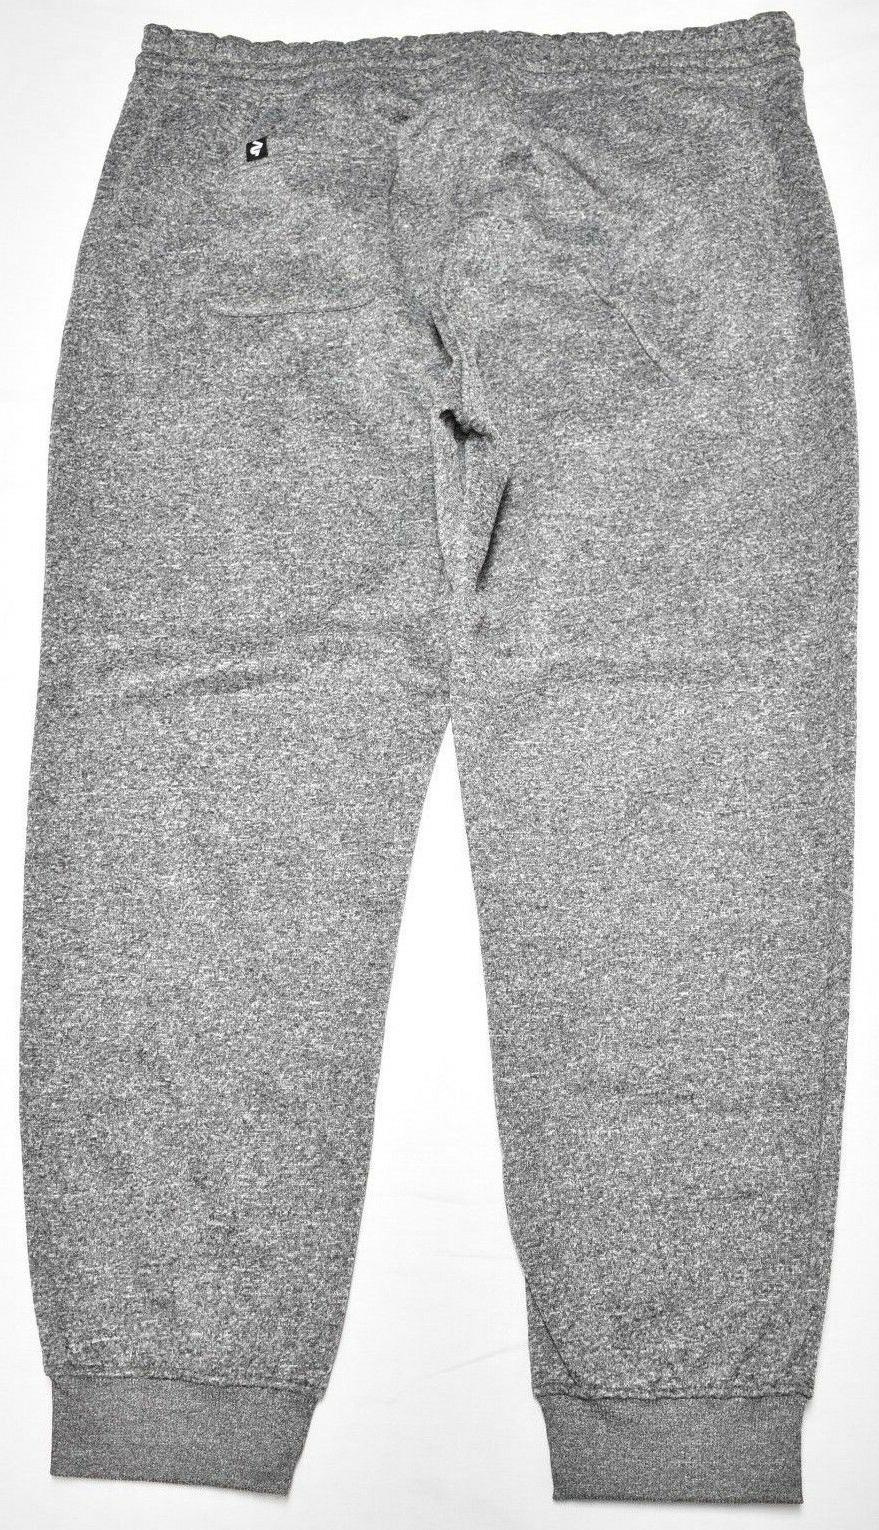 Fleece Sweatpants Marled Grey Big P189